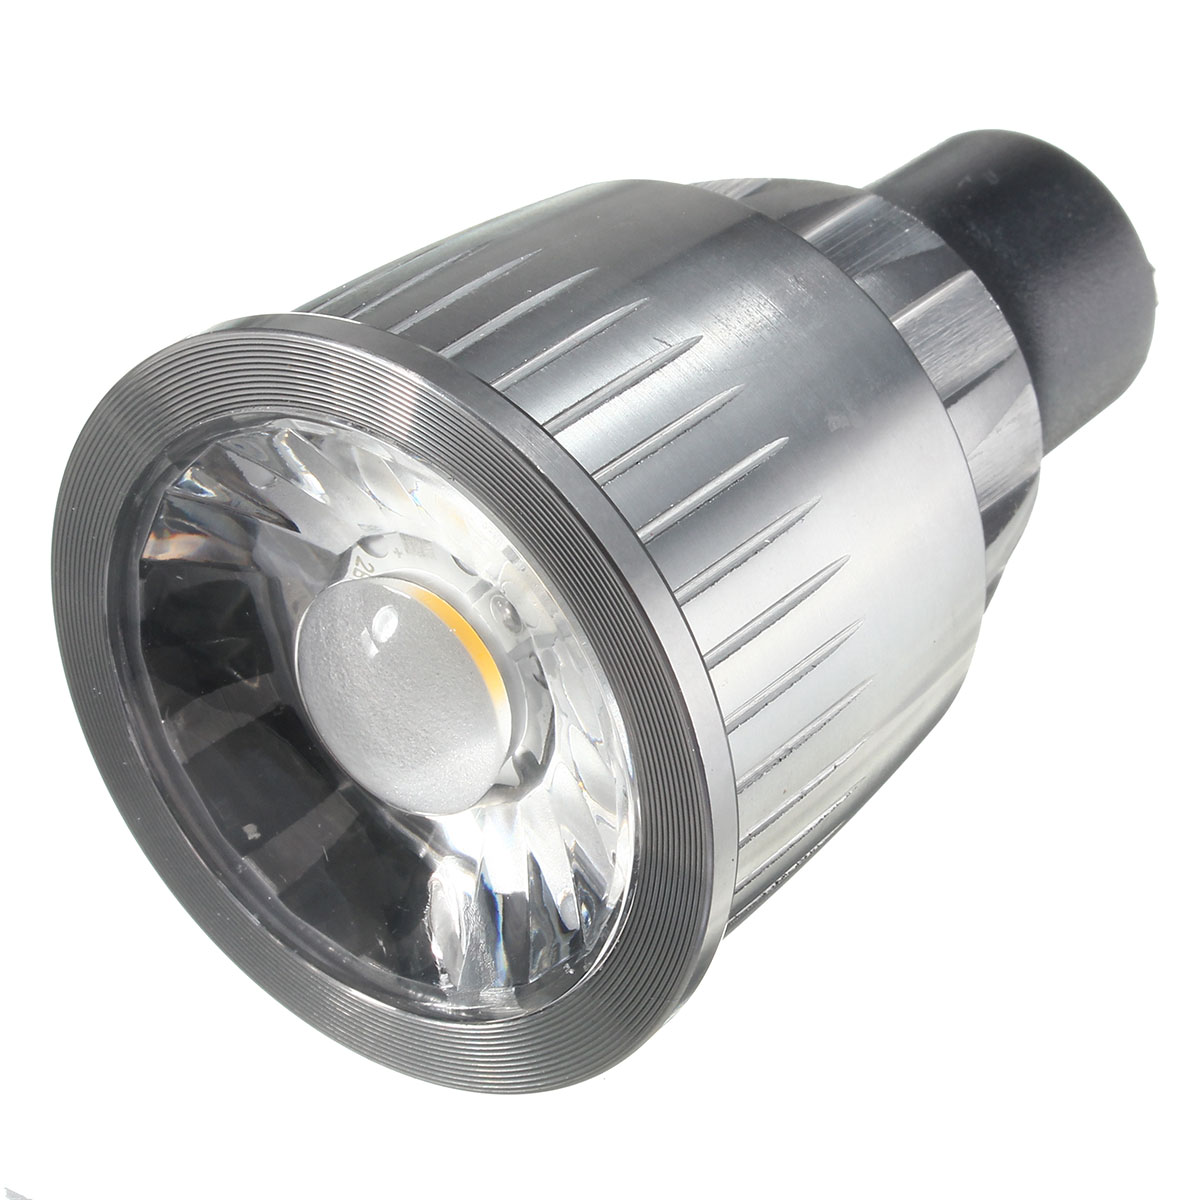 Led Spot Gu10 Led Ultra Bright Dimmable 7w 600lm Gu10 Cob Led Spot Light Bulb Ac 110 220v